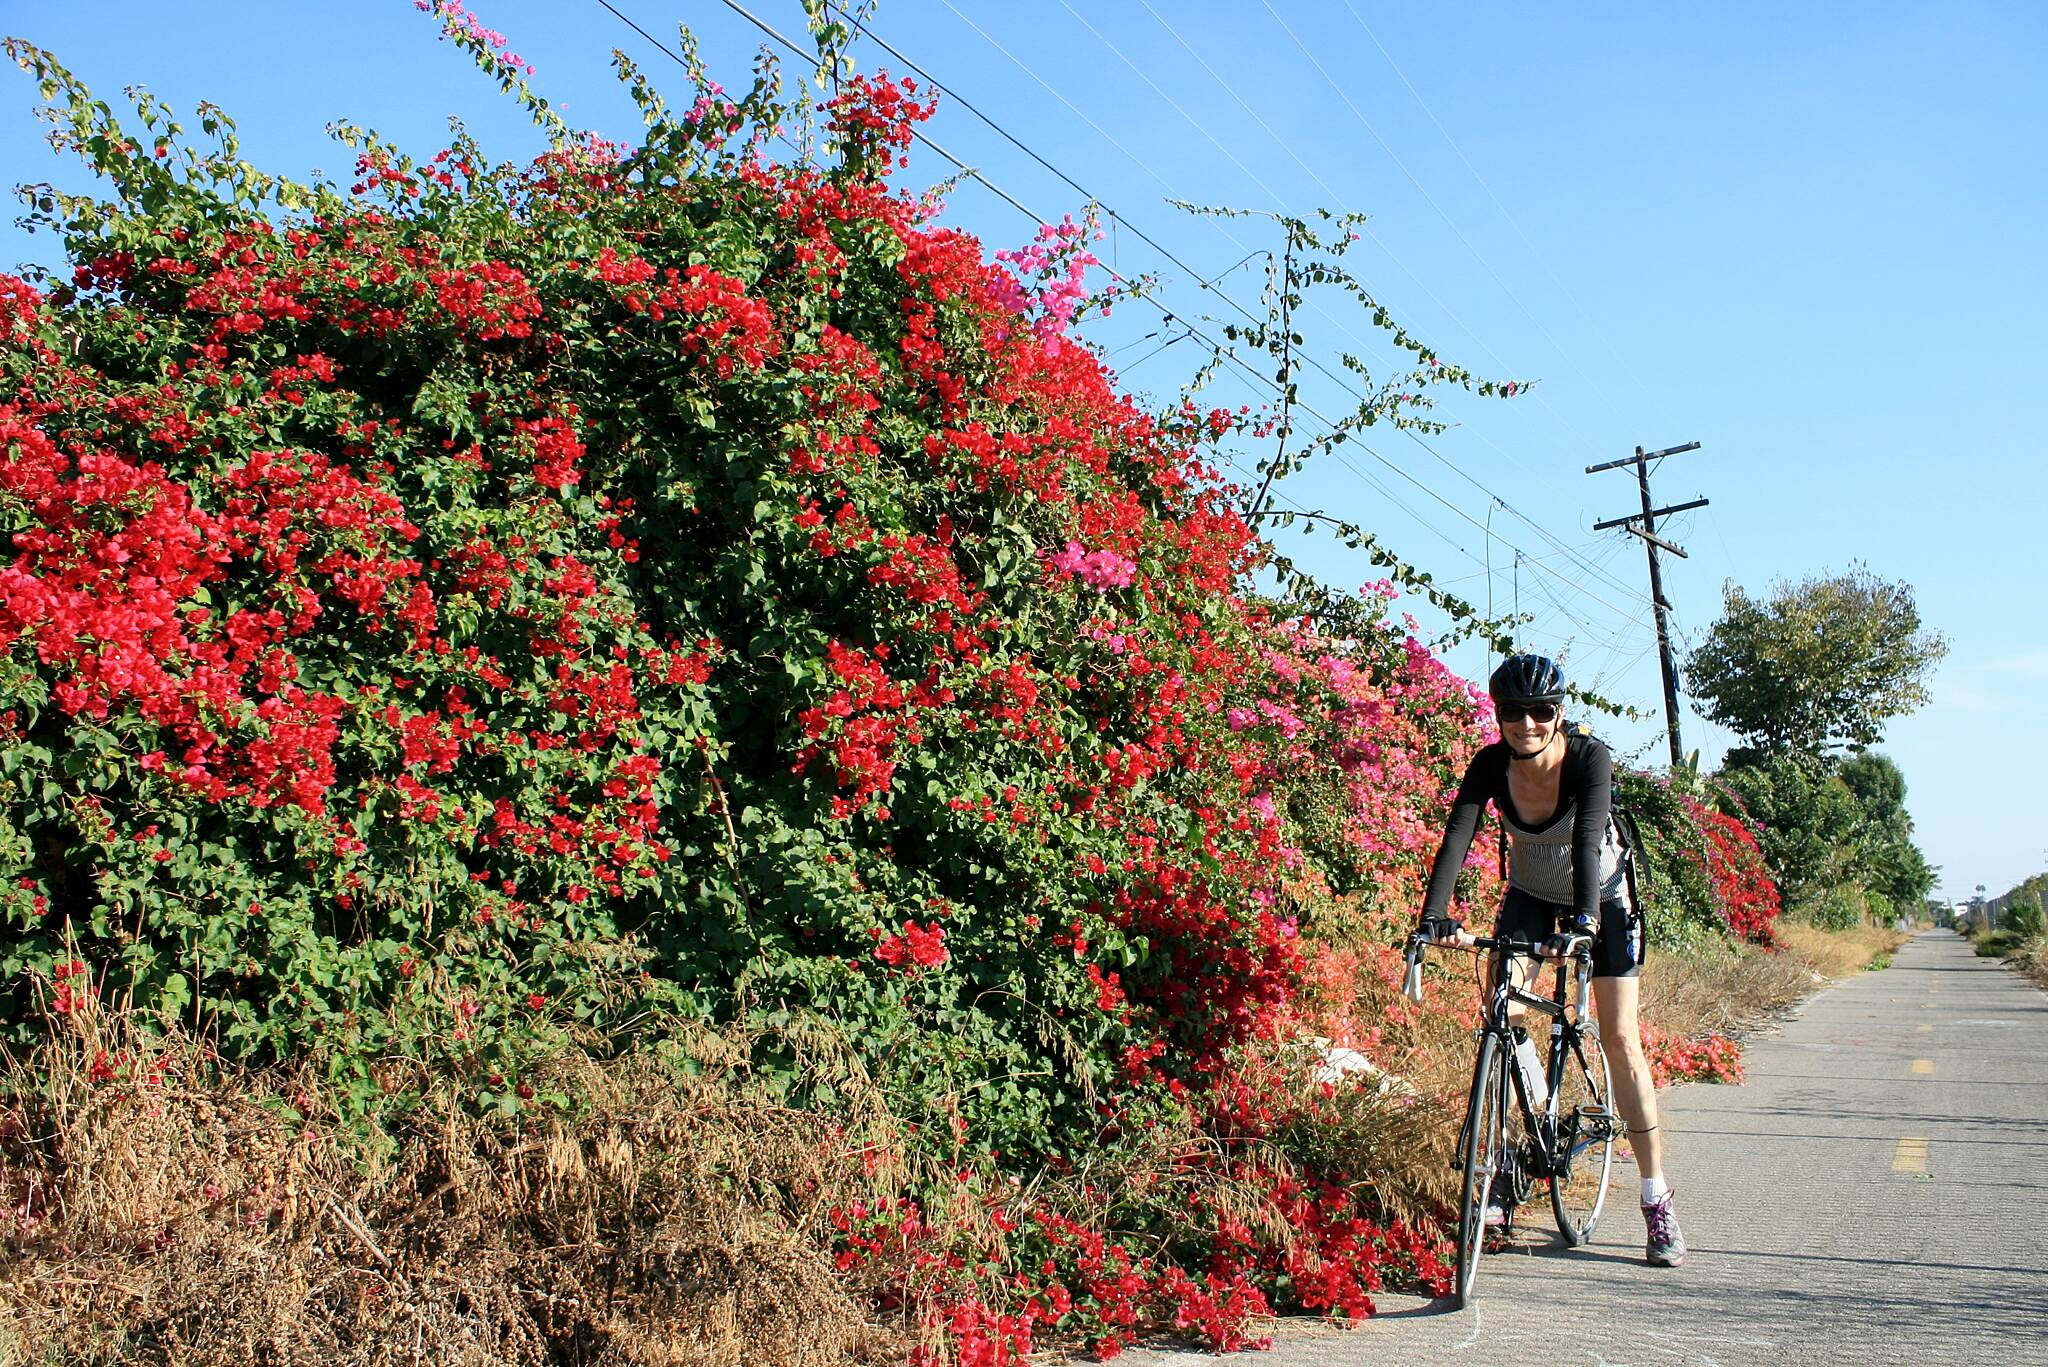 Compton Creek Bike Path Bougainvillea bushes along the Compton Creek Bike Path